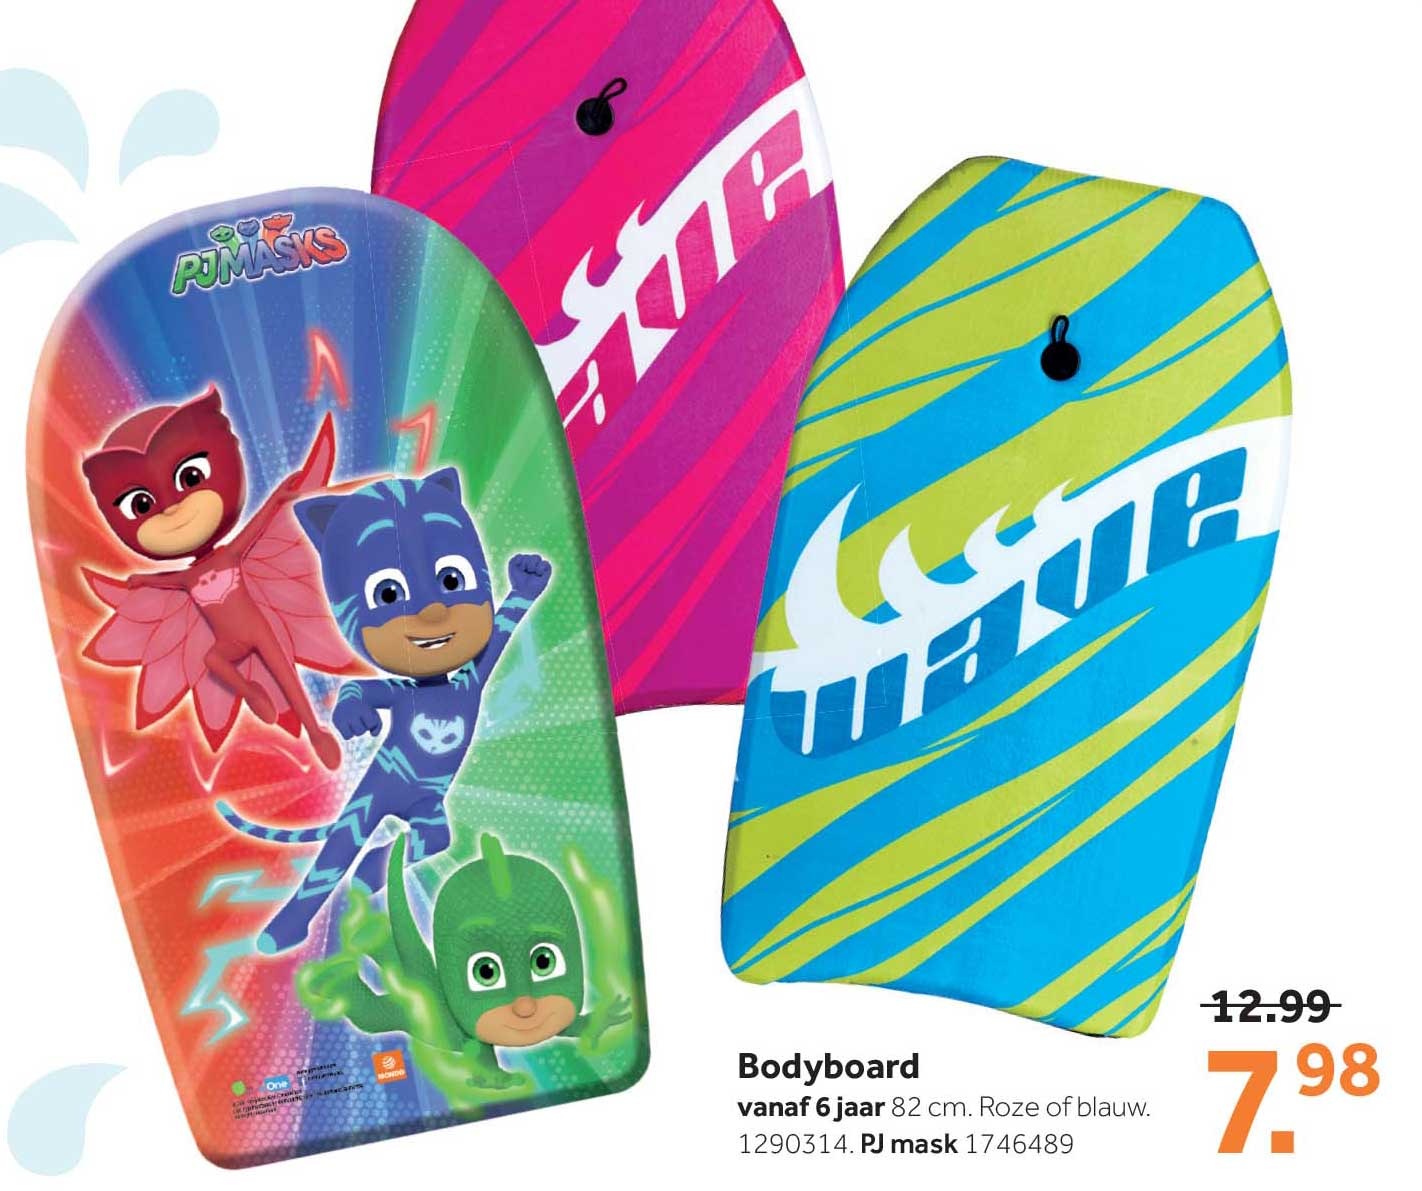 Intertoys Bodyboard